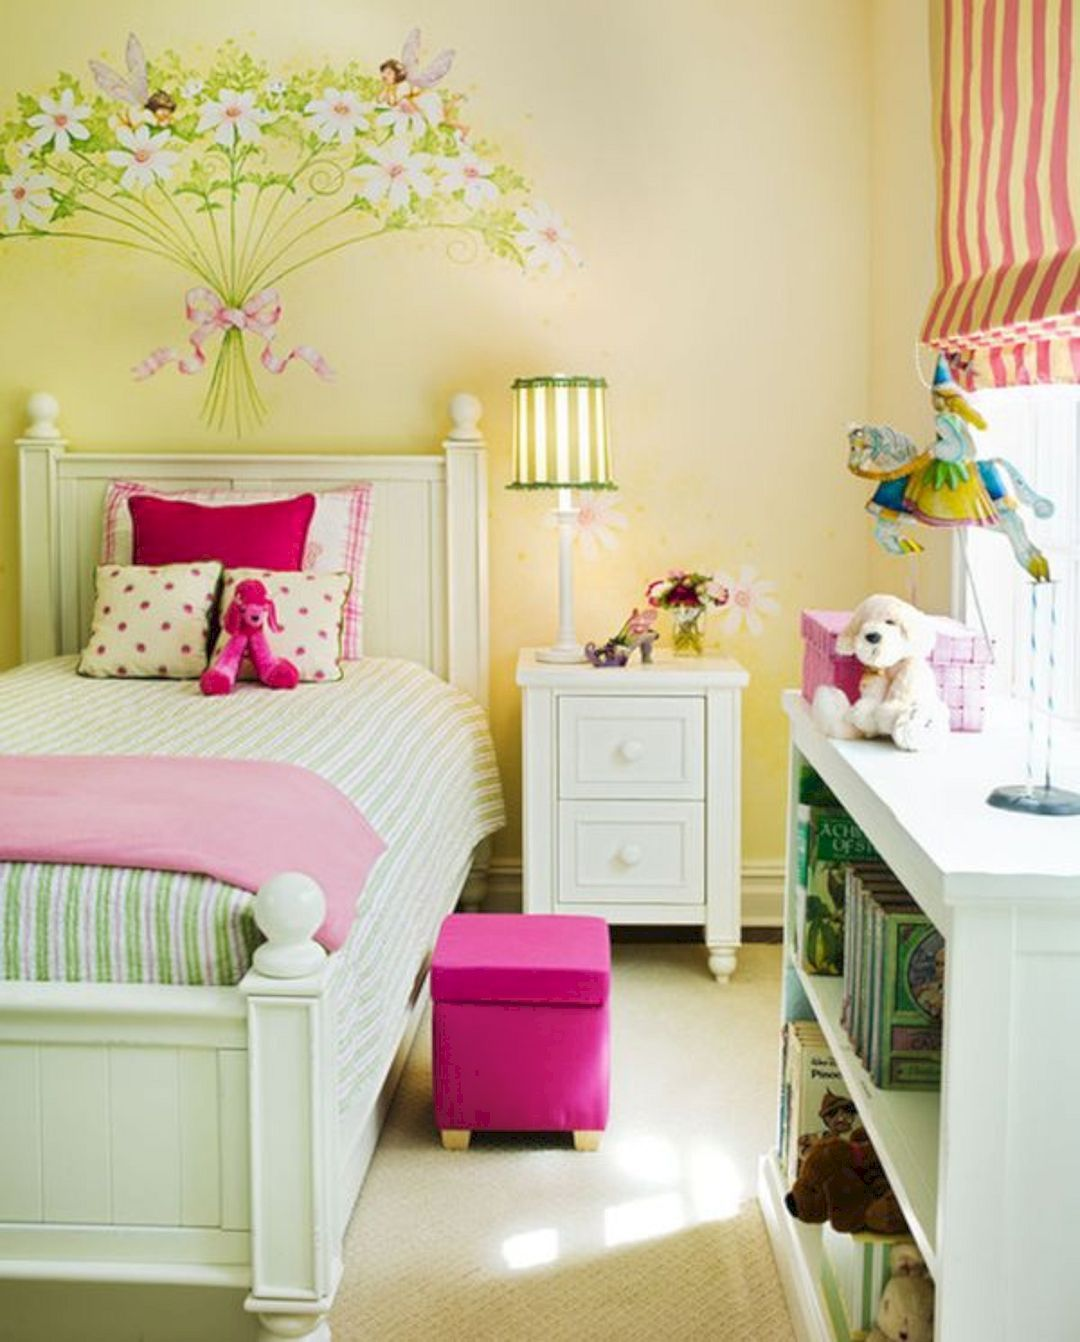 17 Super Cute Bedroom Designs | Bedrooms, Design design and Kids rooms